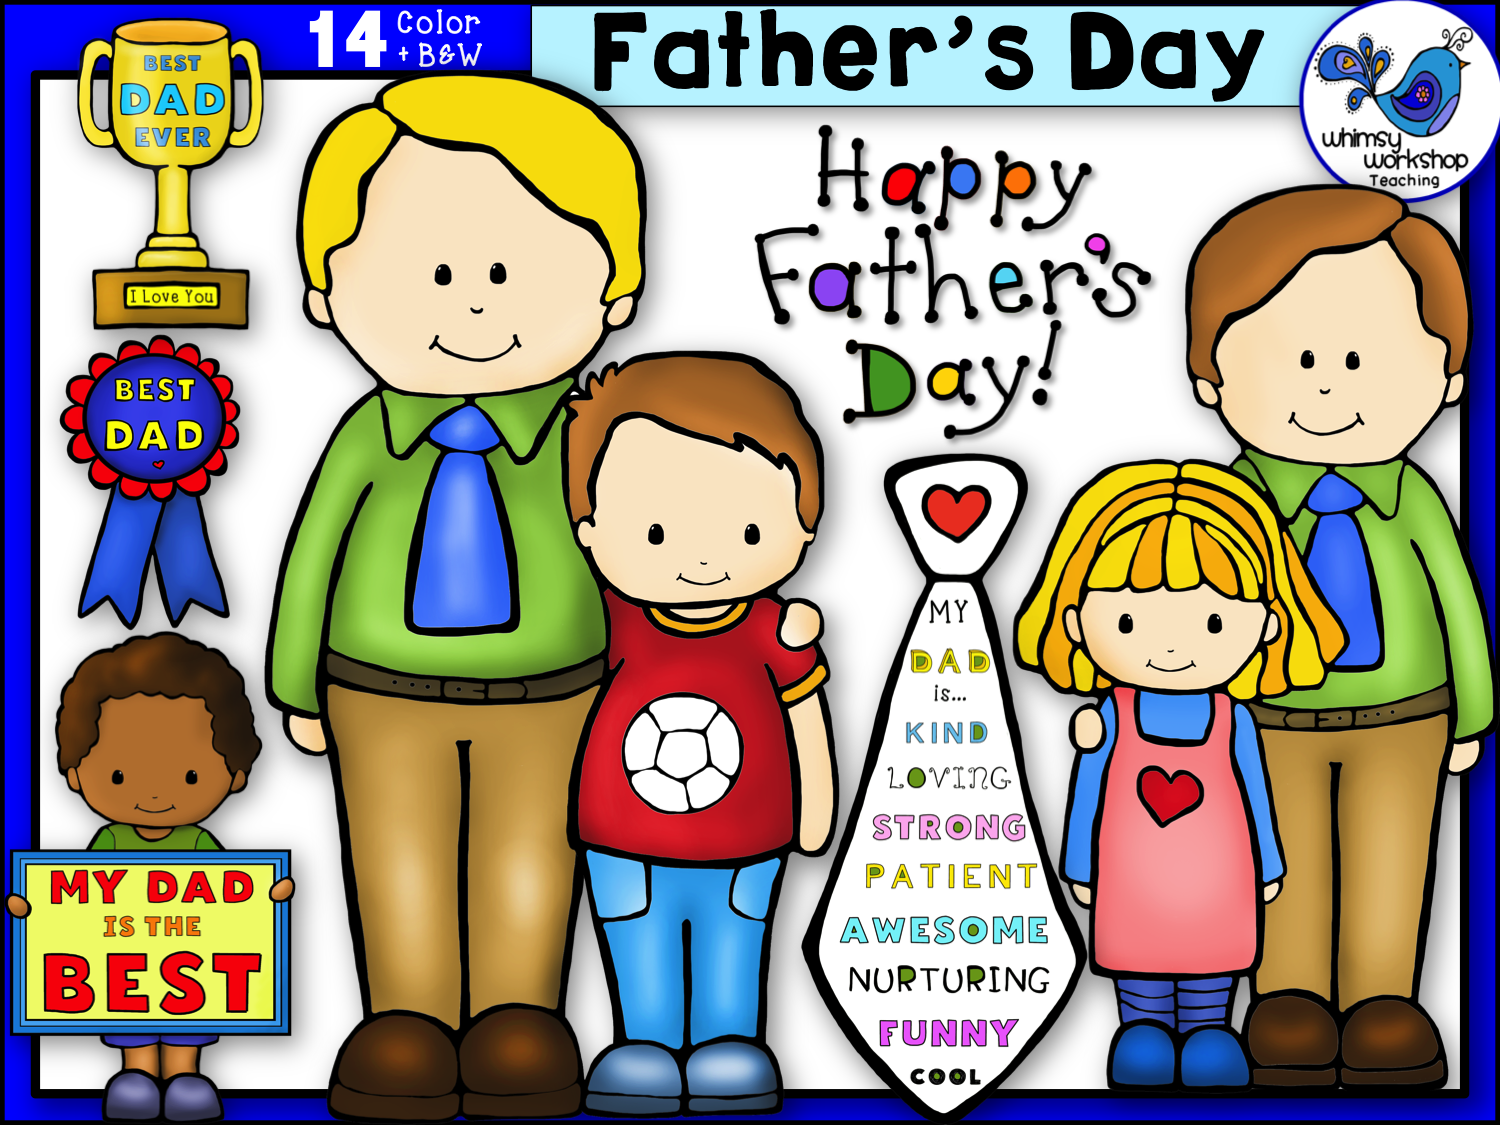 small resolution of free new set of father s day clip art 14 graphics in color and black and white whimsy workshop teaching